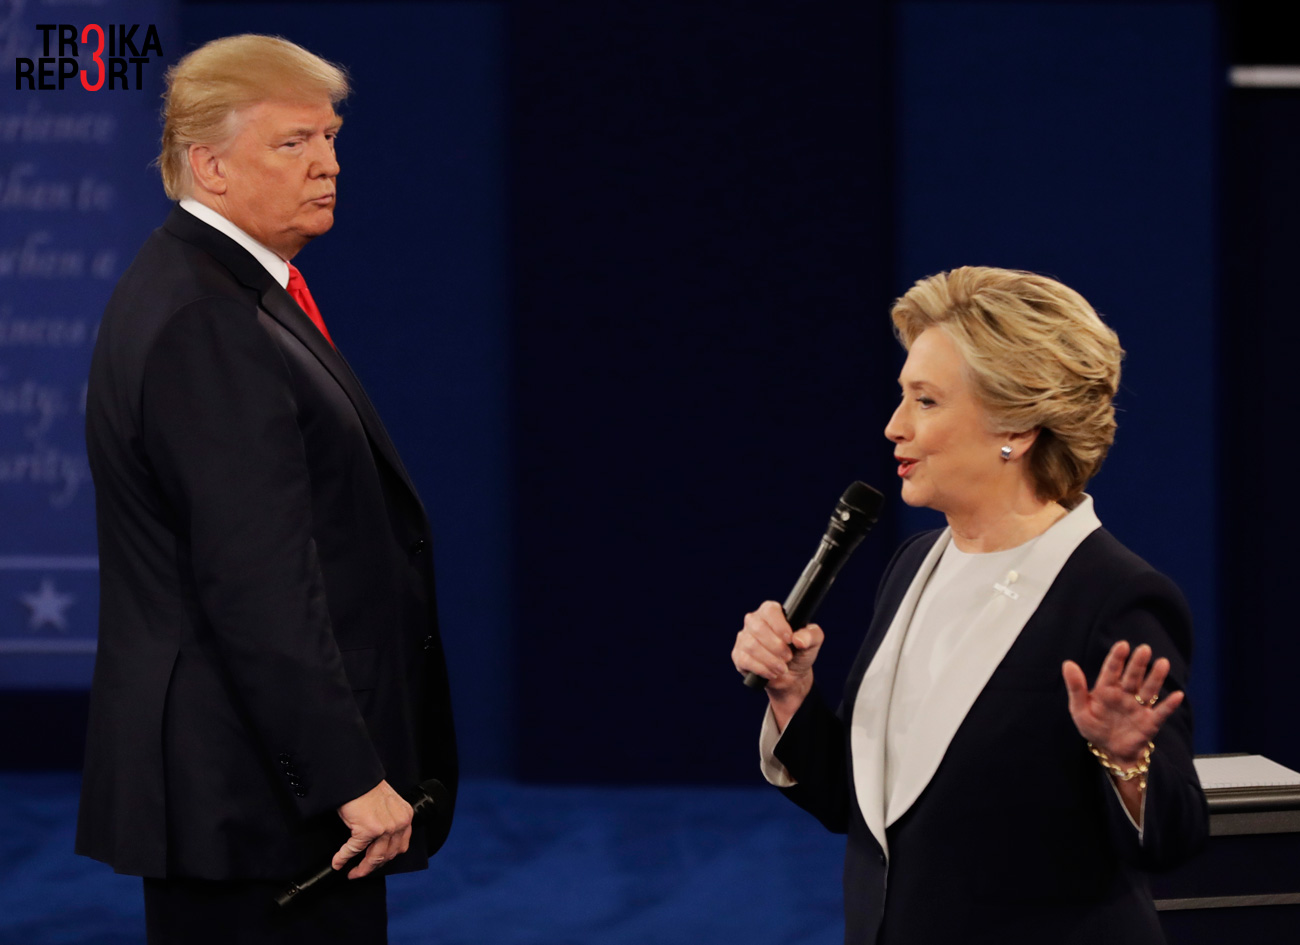 Republican presidential nominee Donald Trump listens to Democratic presidential nominee Hillary Clinton during the second presidential debate at Washington University in St. Louis.